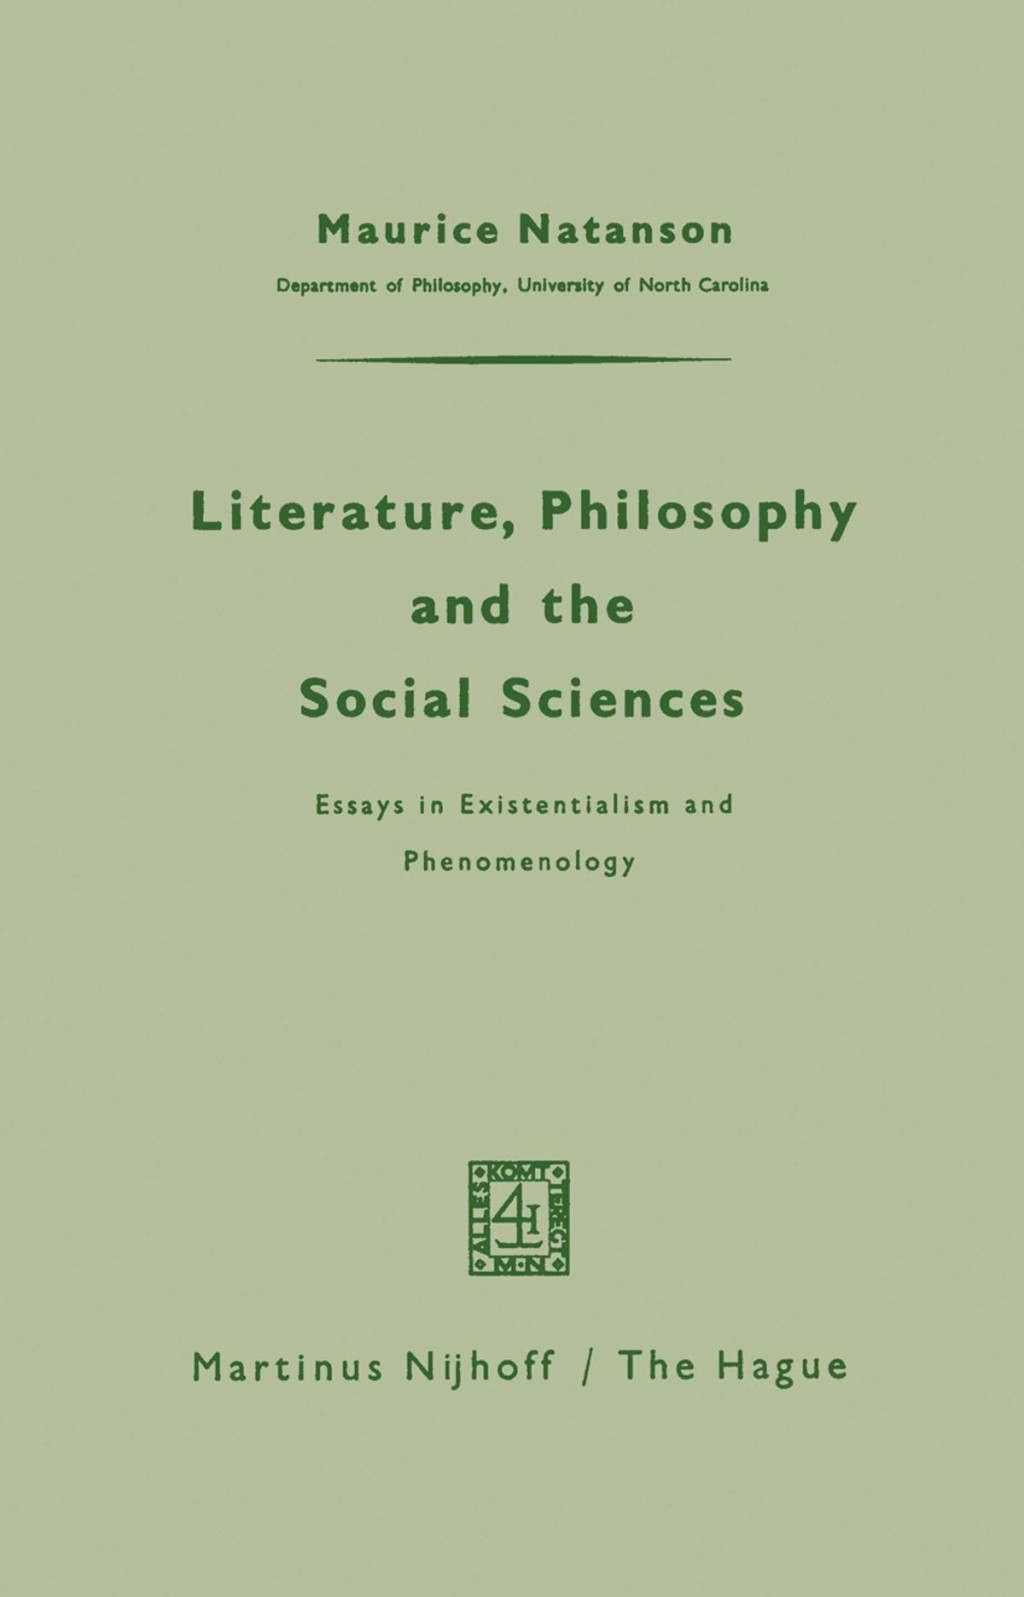 009 Literature Philosophy And The Social Sciences Essay Example Essays In Outstanding Existentialism Pdf Sartre Large